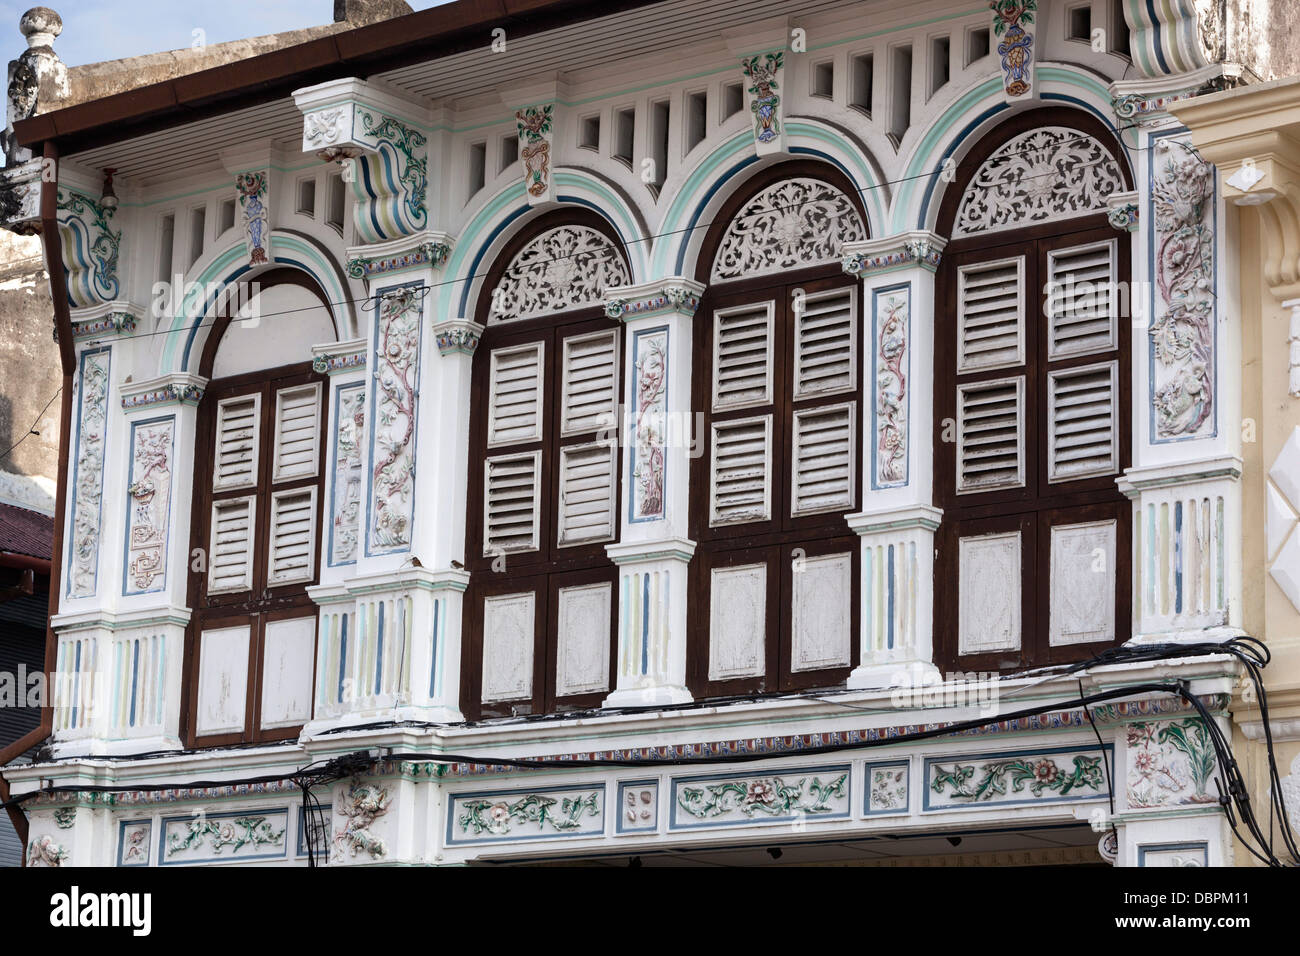 Detail of colonial era houses, Georgetown, Pulau Penang, Malaysia, Southeast Asia, Asia - Stock Image